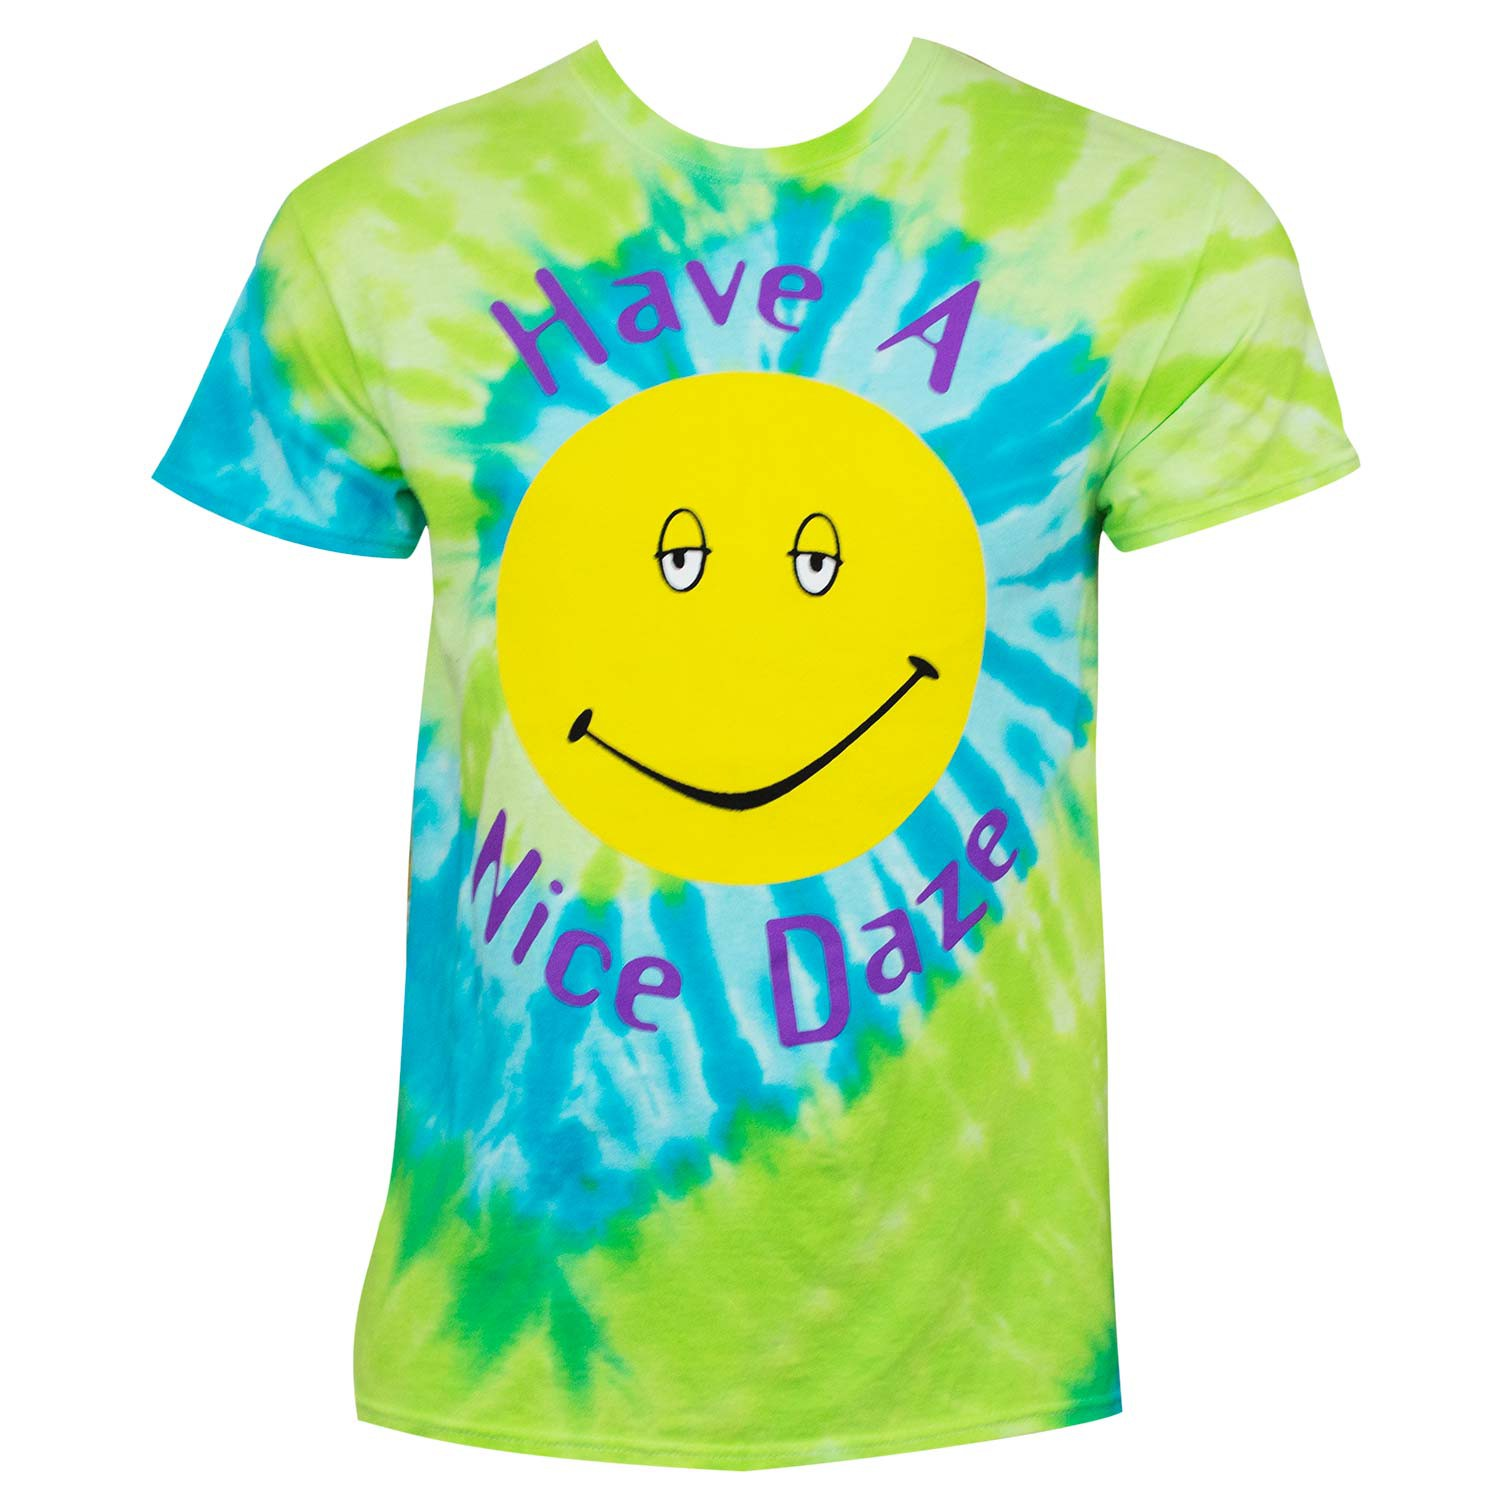 Dazed And Confused Have A Nice Daze Tee Shirt